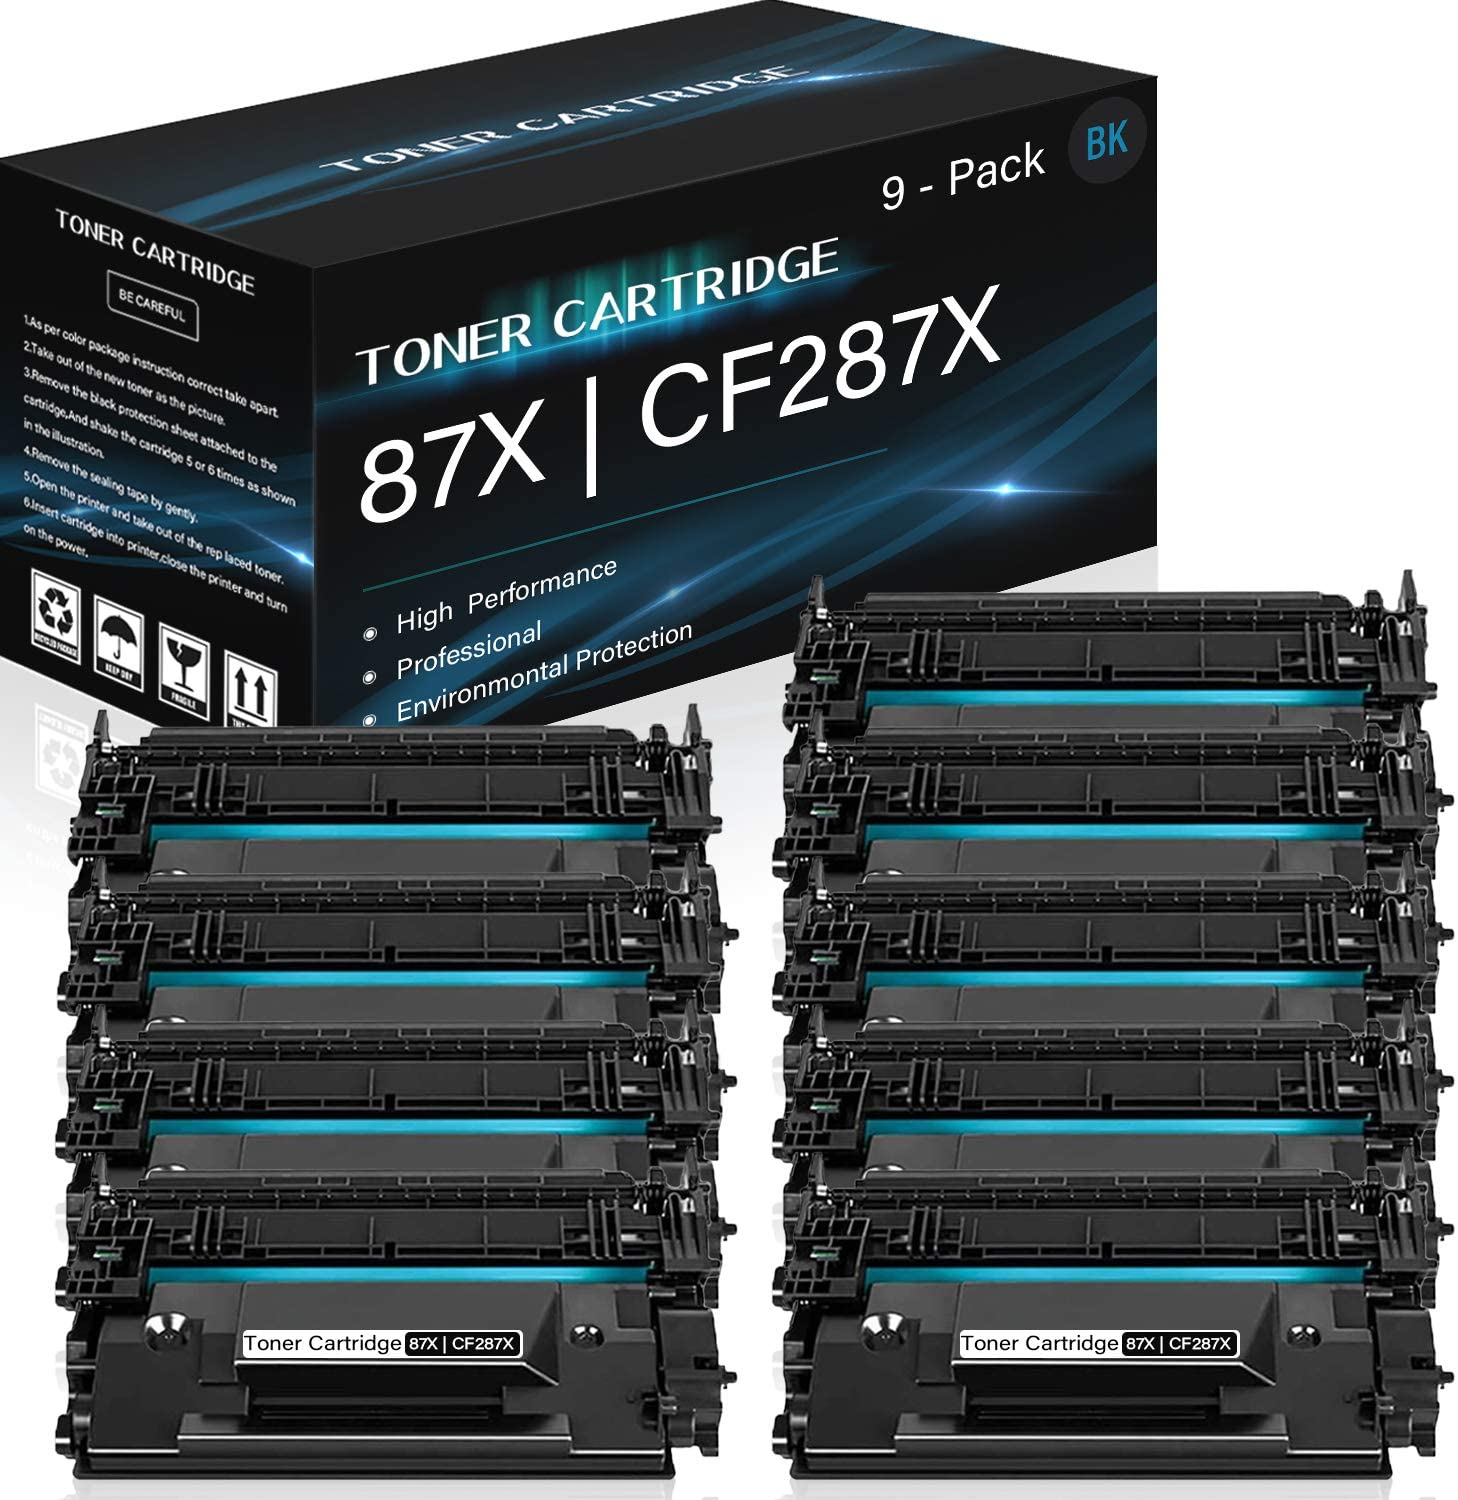 9 Pack 87X | CF287X (Black) Compatible High Yield Toner Cartridge Replacement for HP Laserjet Pro M501dn M506dn MFP M527dn Enterprise Flow MFP M527c Printers,Sold by Thurink.